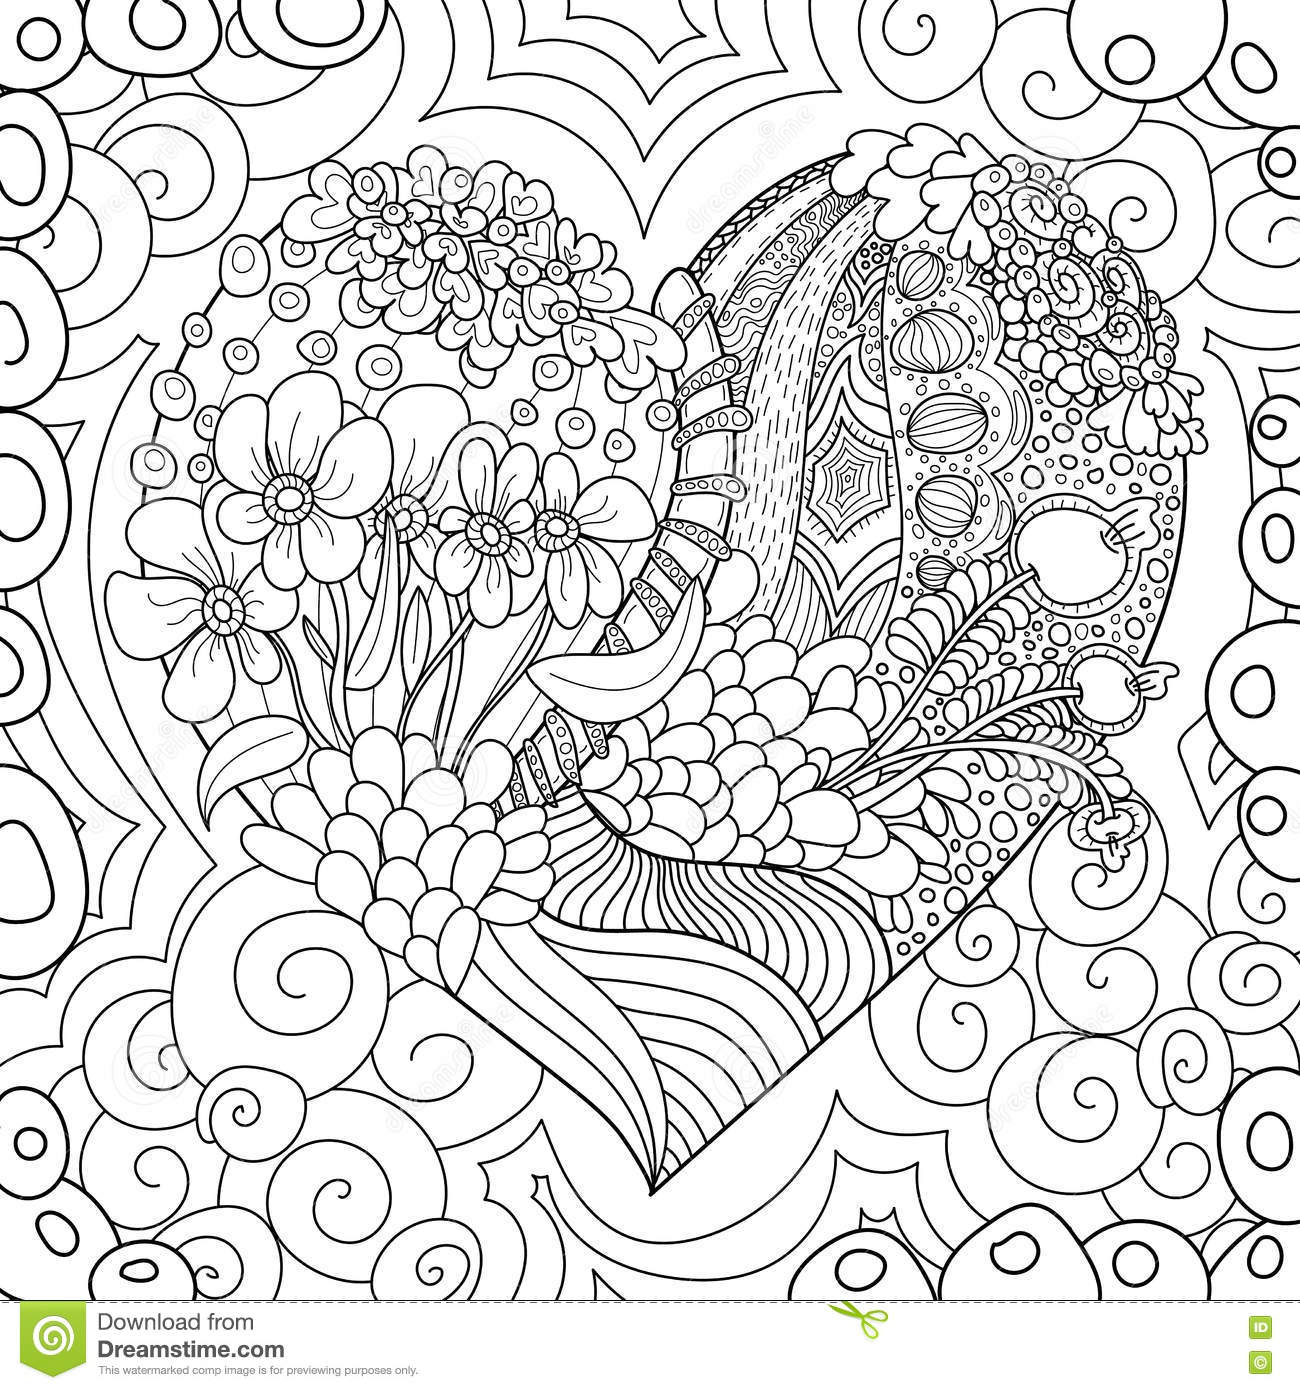 Download Pattern For Coloring Book Ethnic Retro Design Stock Vector